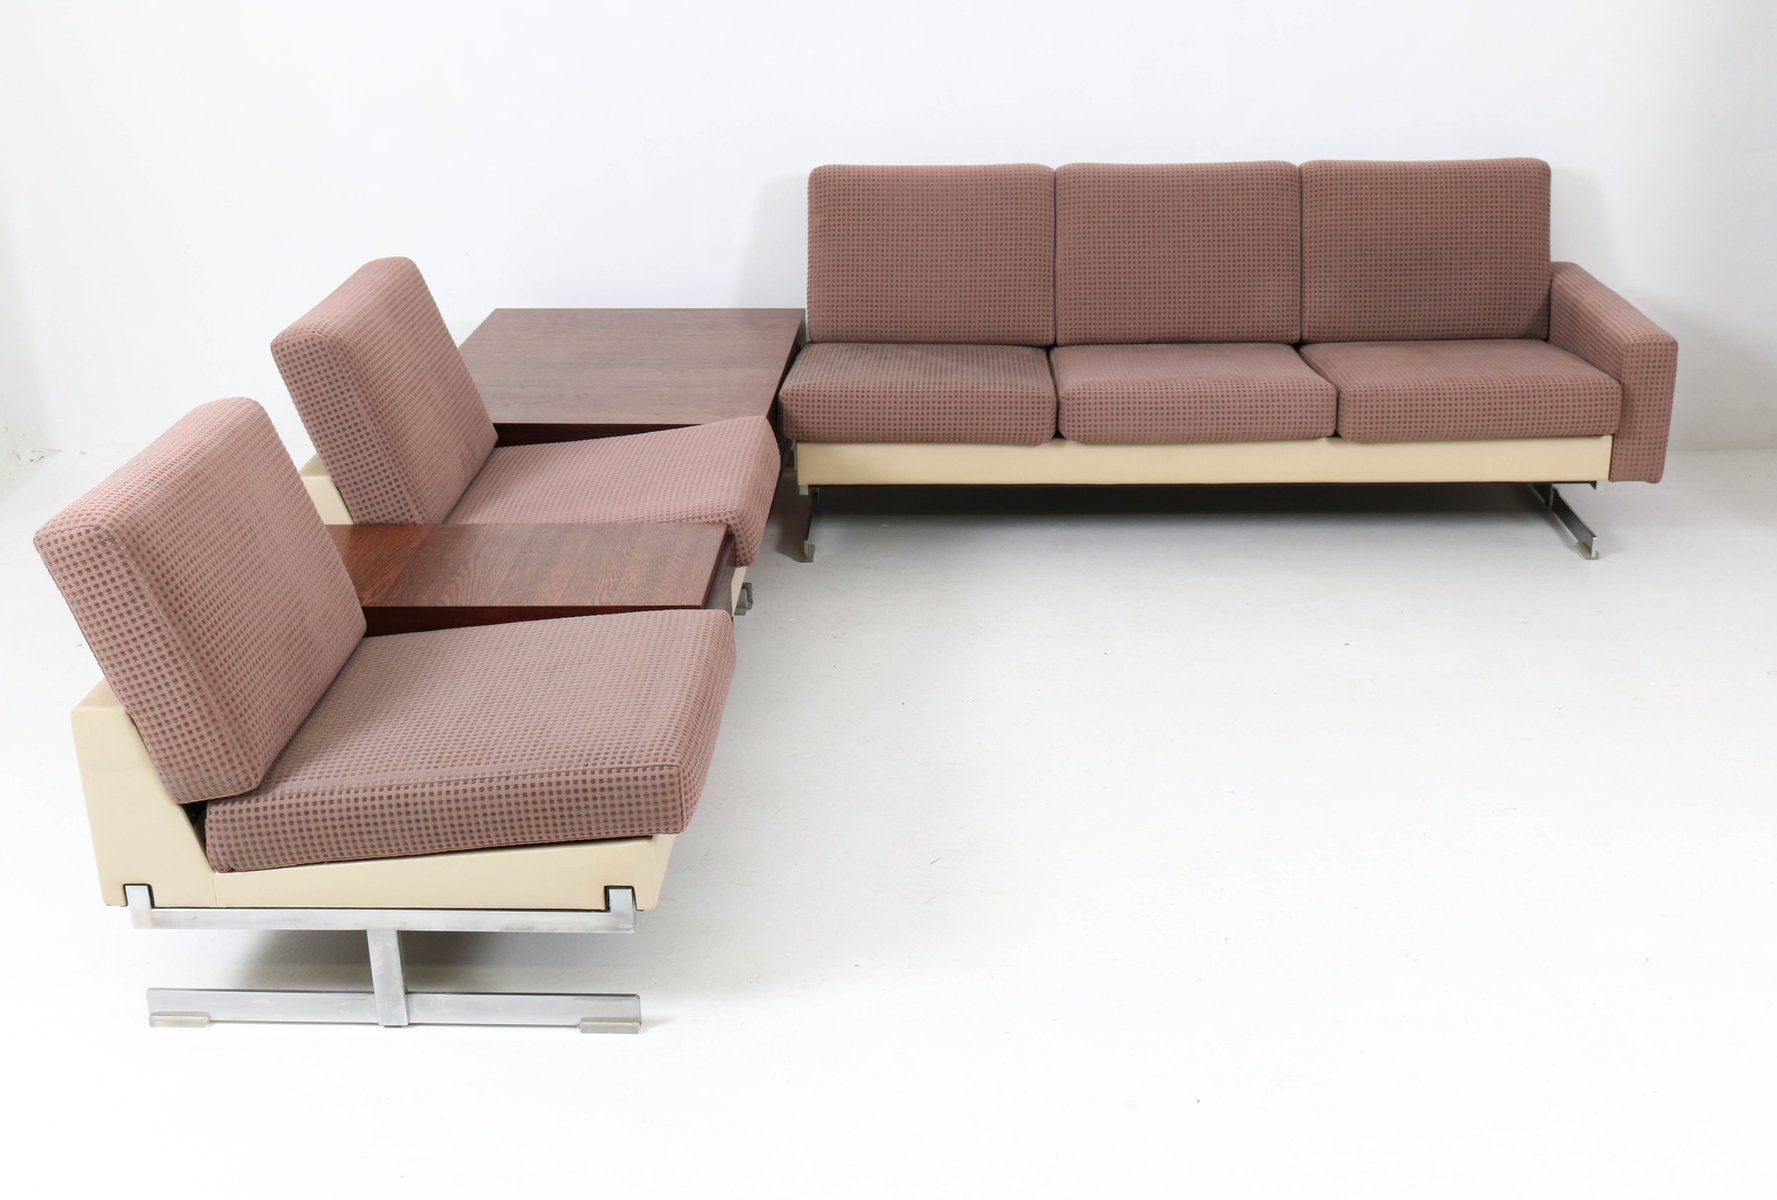 mid century model pluraform modern sofas with wenge coffee tables by rolf benz 1964 for sale at. Black Bedroom Furniture Sets. Home Design Ideas